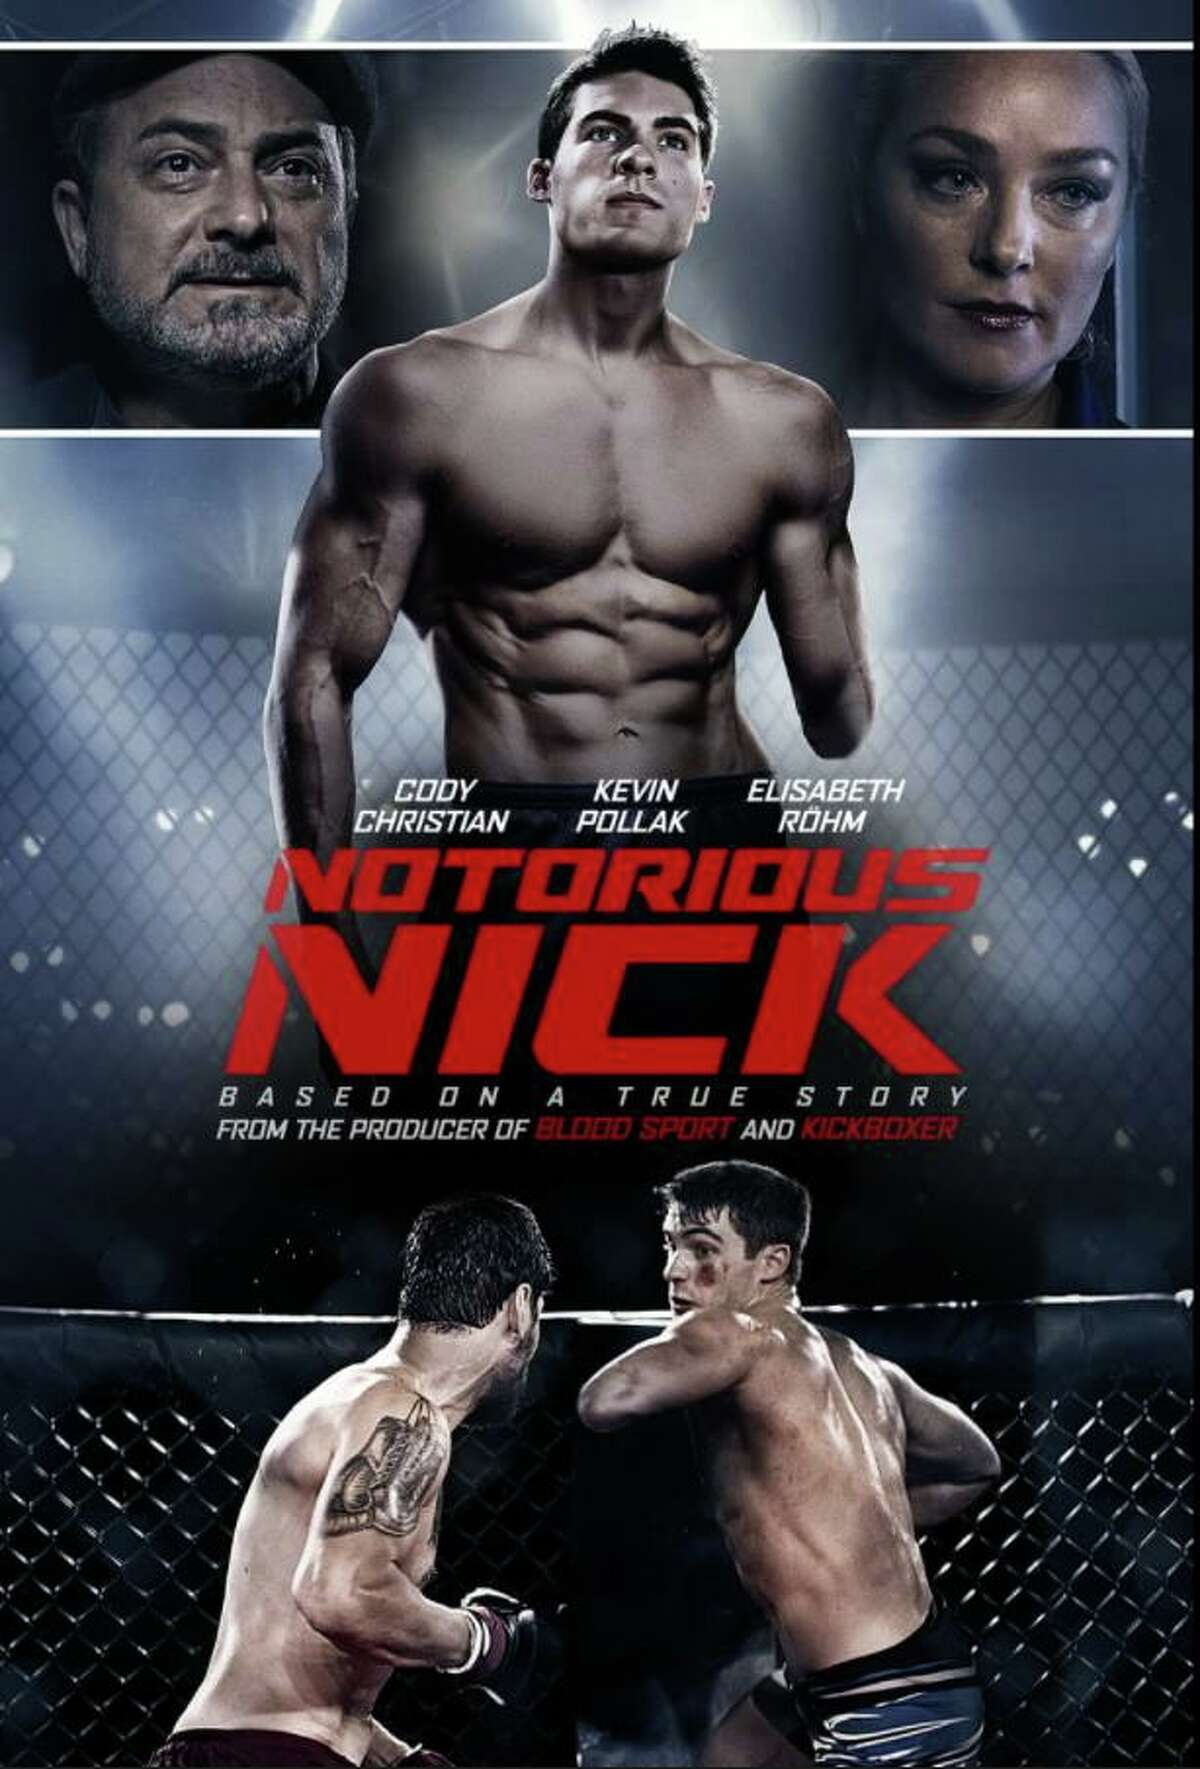 Notorious Nick, a feature film based on the life of mixed martial arts fighter Nick Newell.